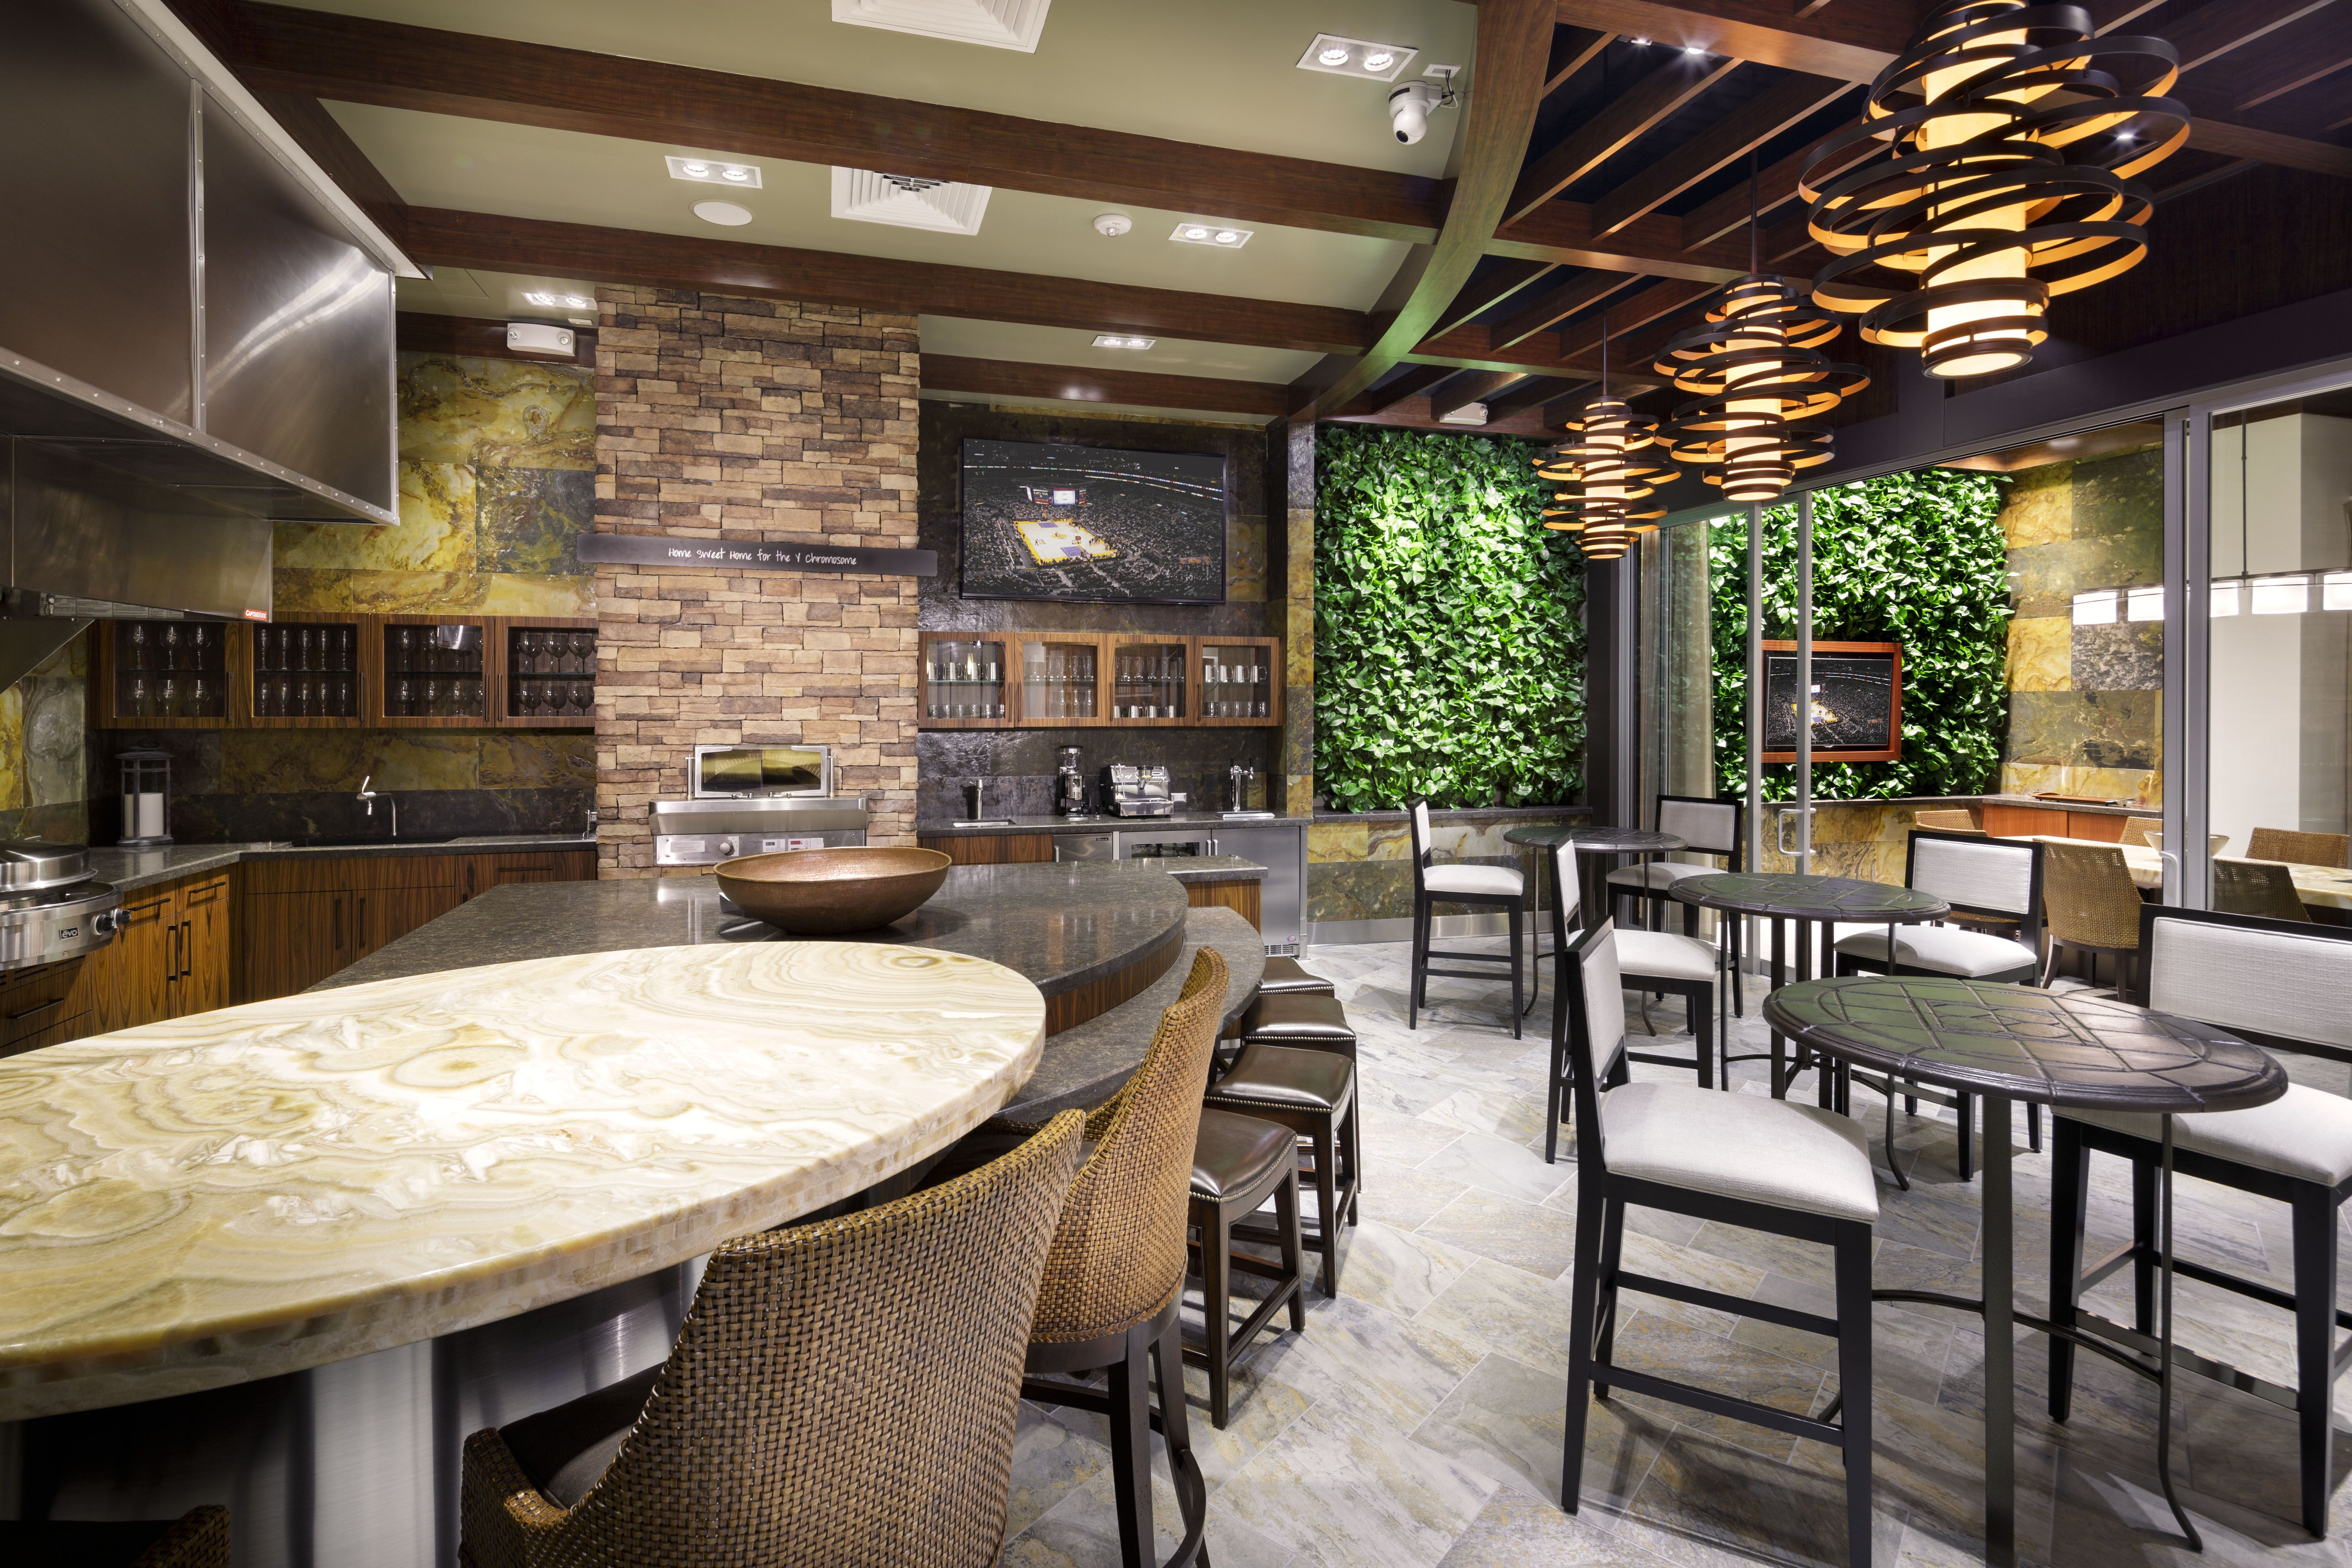 Outdoor Kitchens San Diego The Patio At Pirch Glendale Here You Can Host Private Events